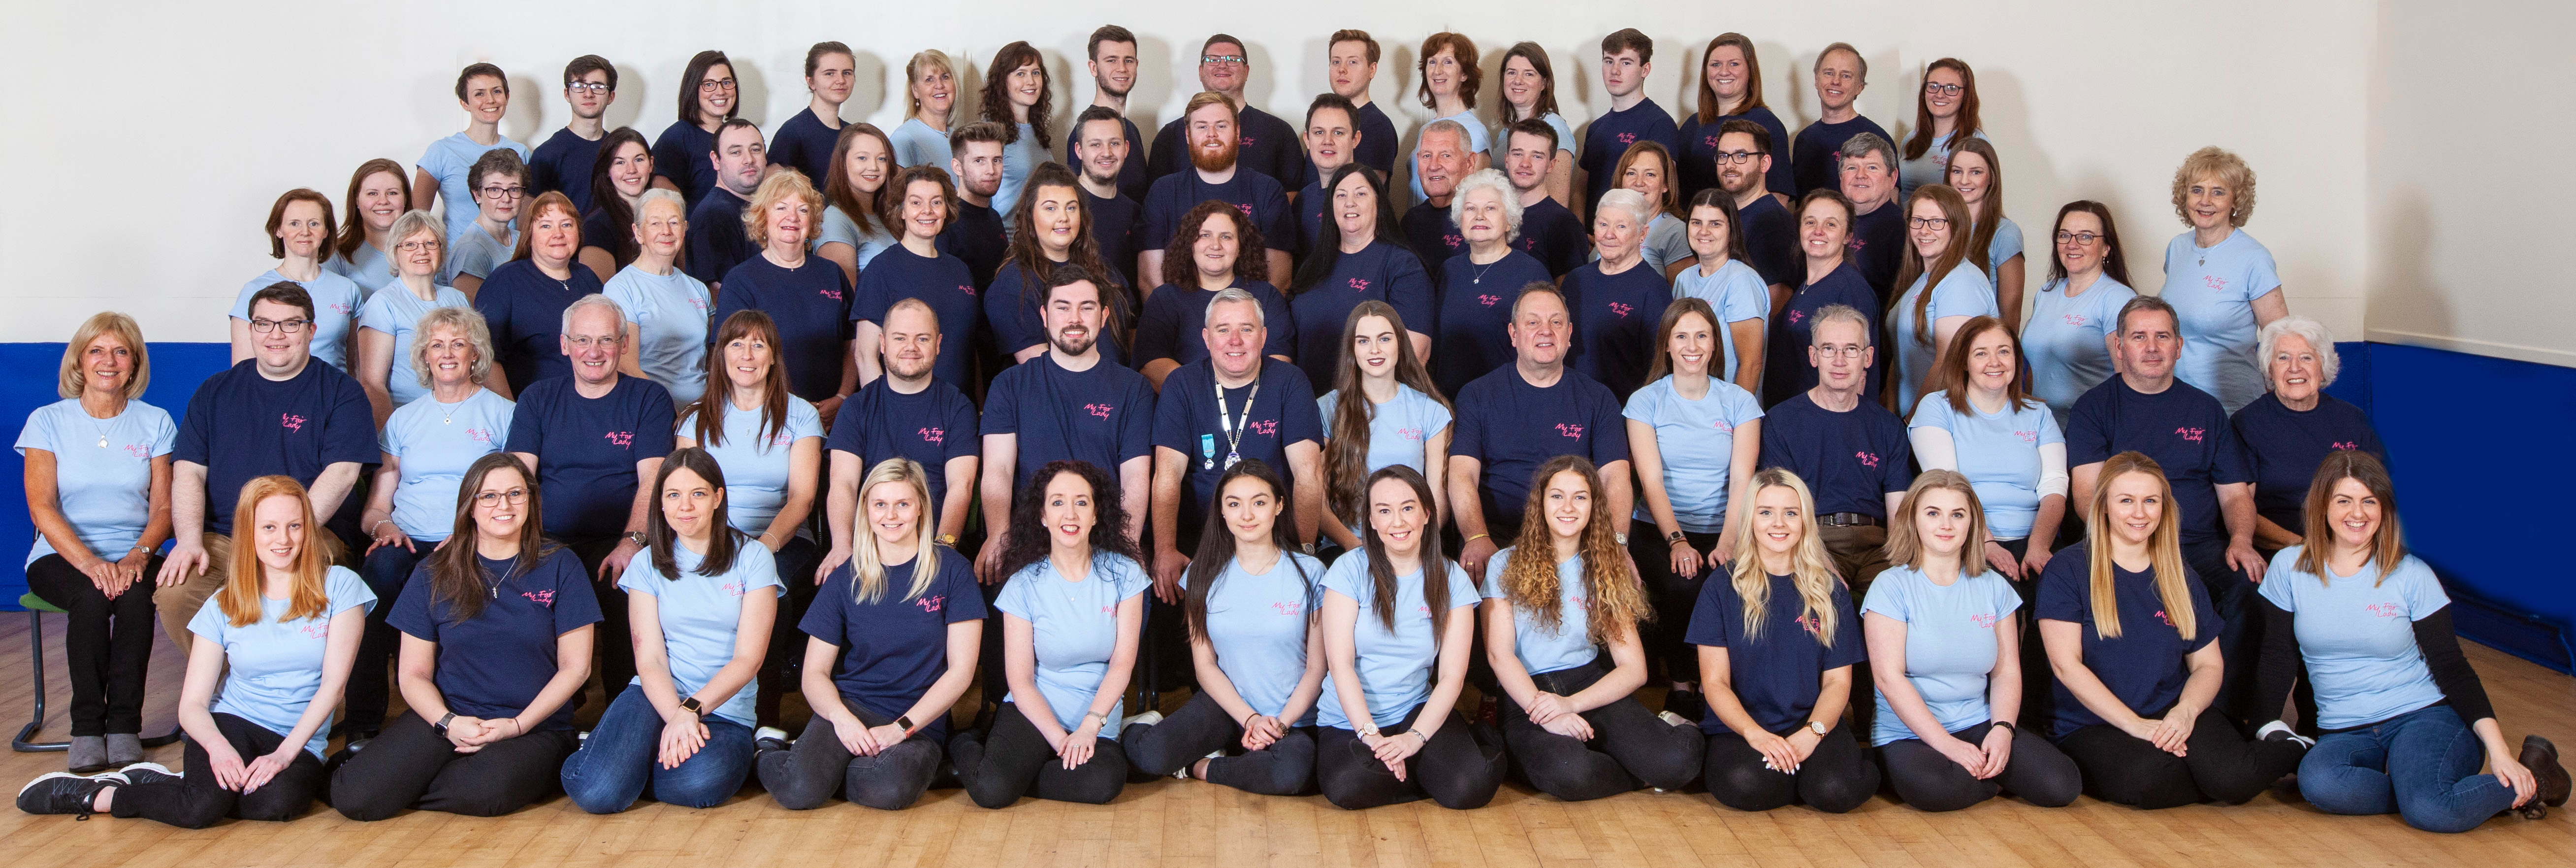 Southern Light Members & Production Team 2018/19